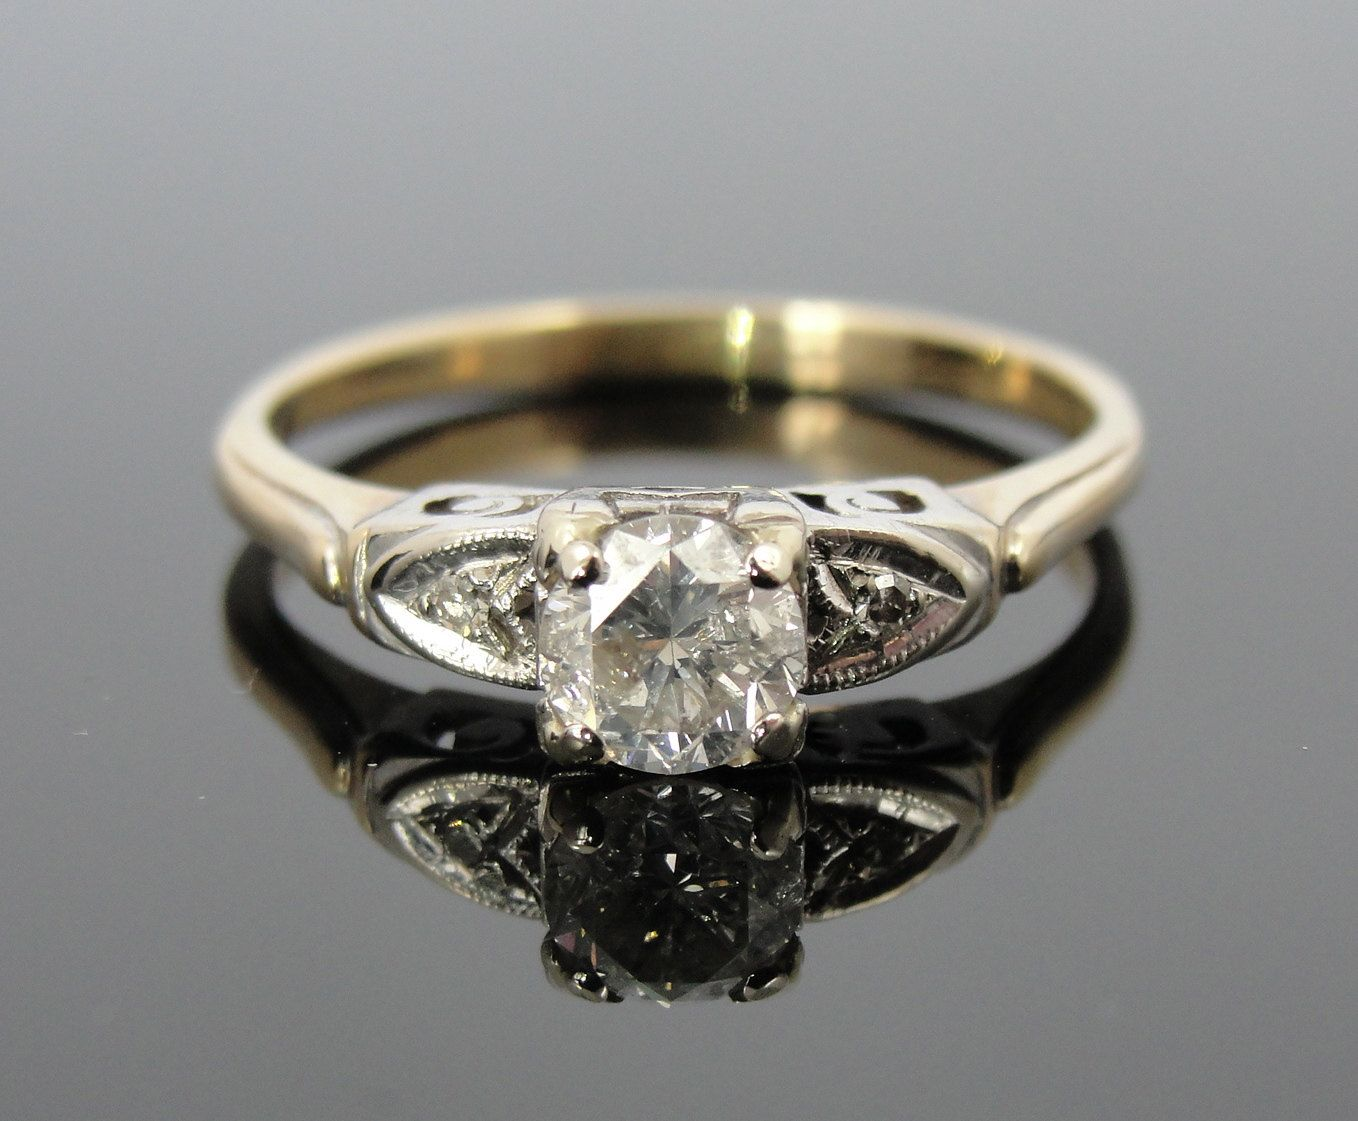 Intricate vintage engagement ring Bling